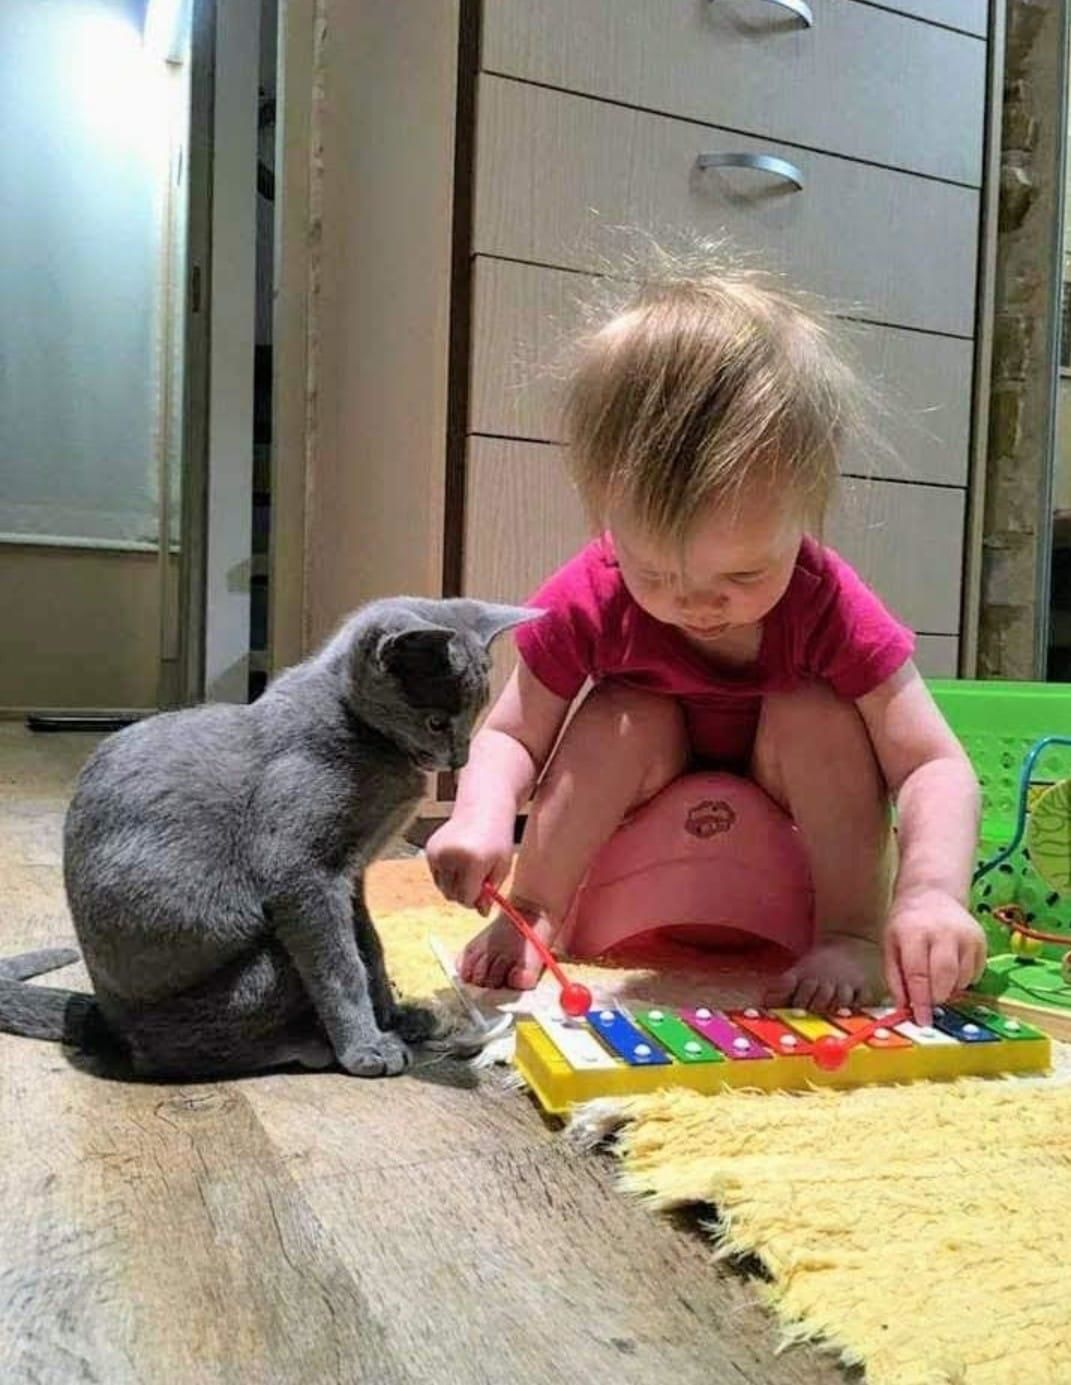 PET SENSE: When baby makes four; don't forget your four legged 'baby'